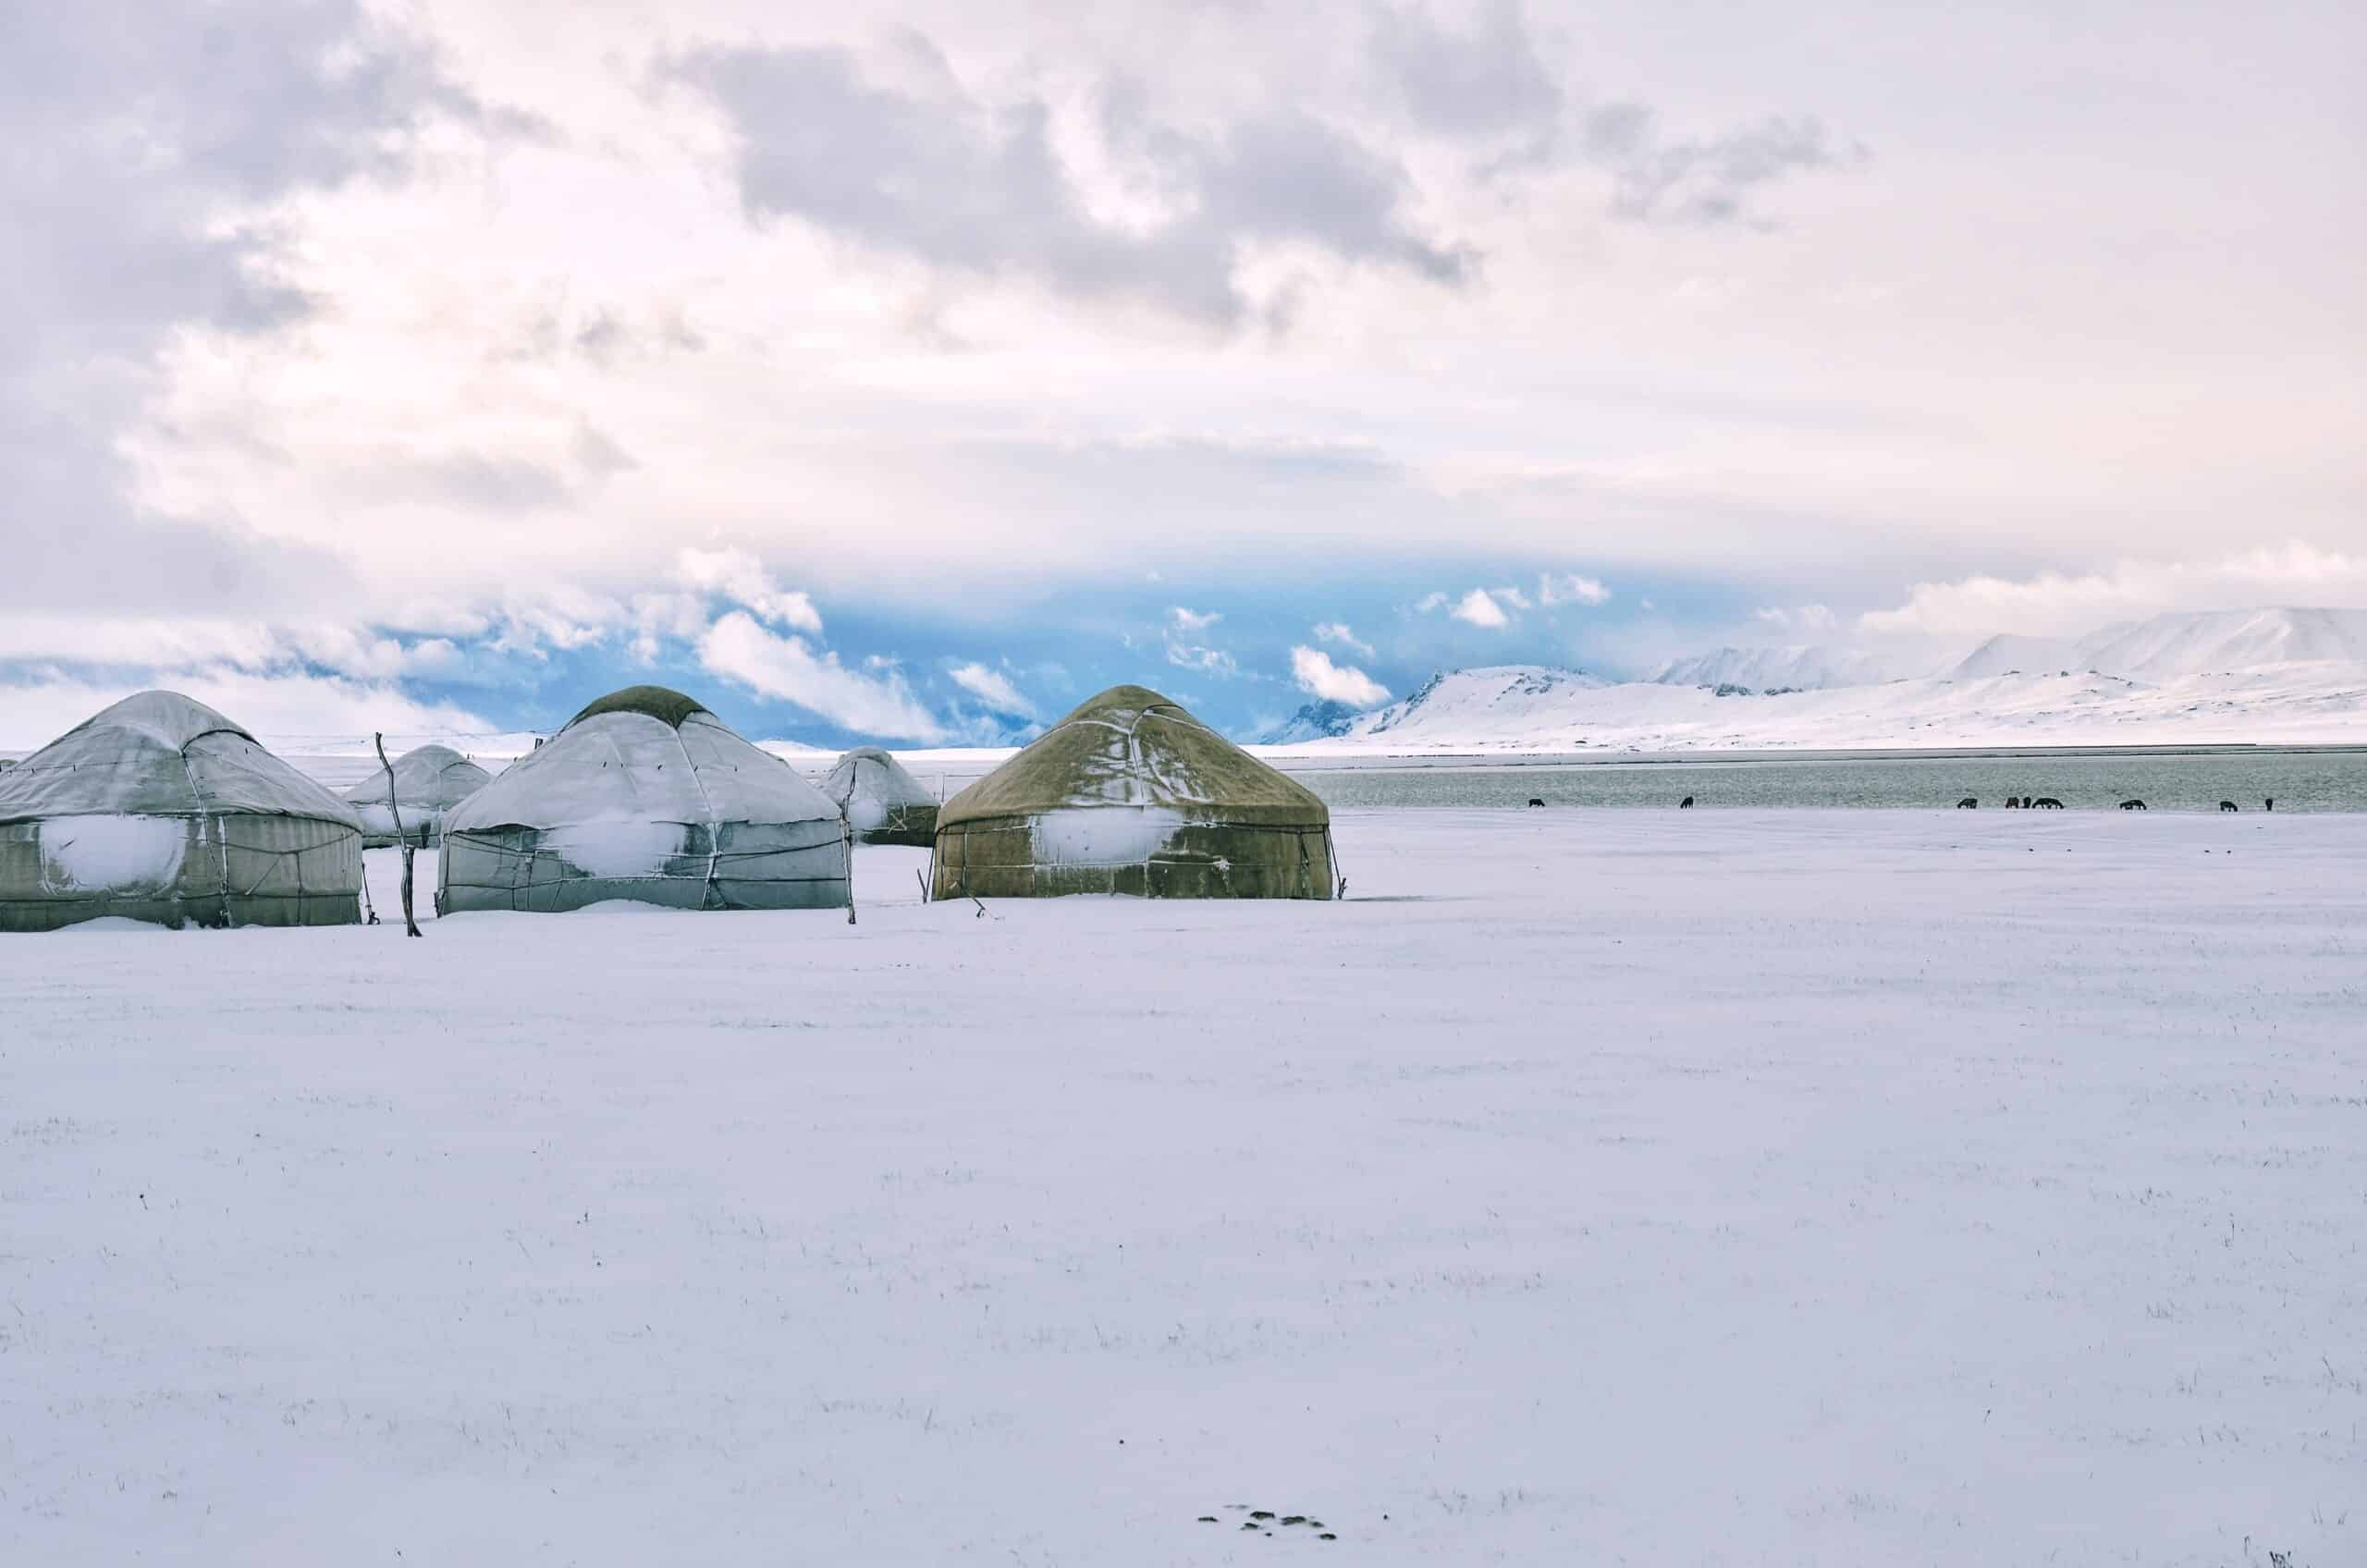 series of yurts in the snow